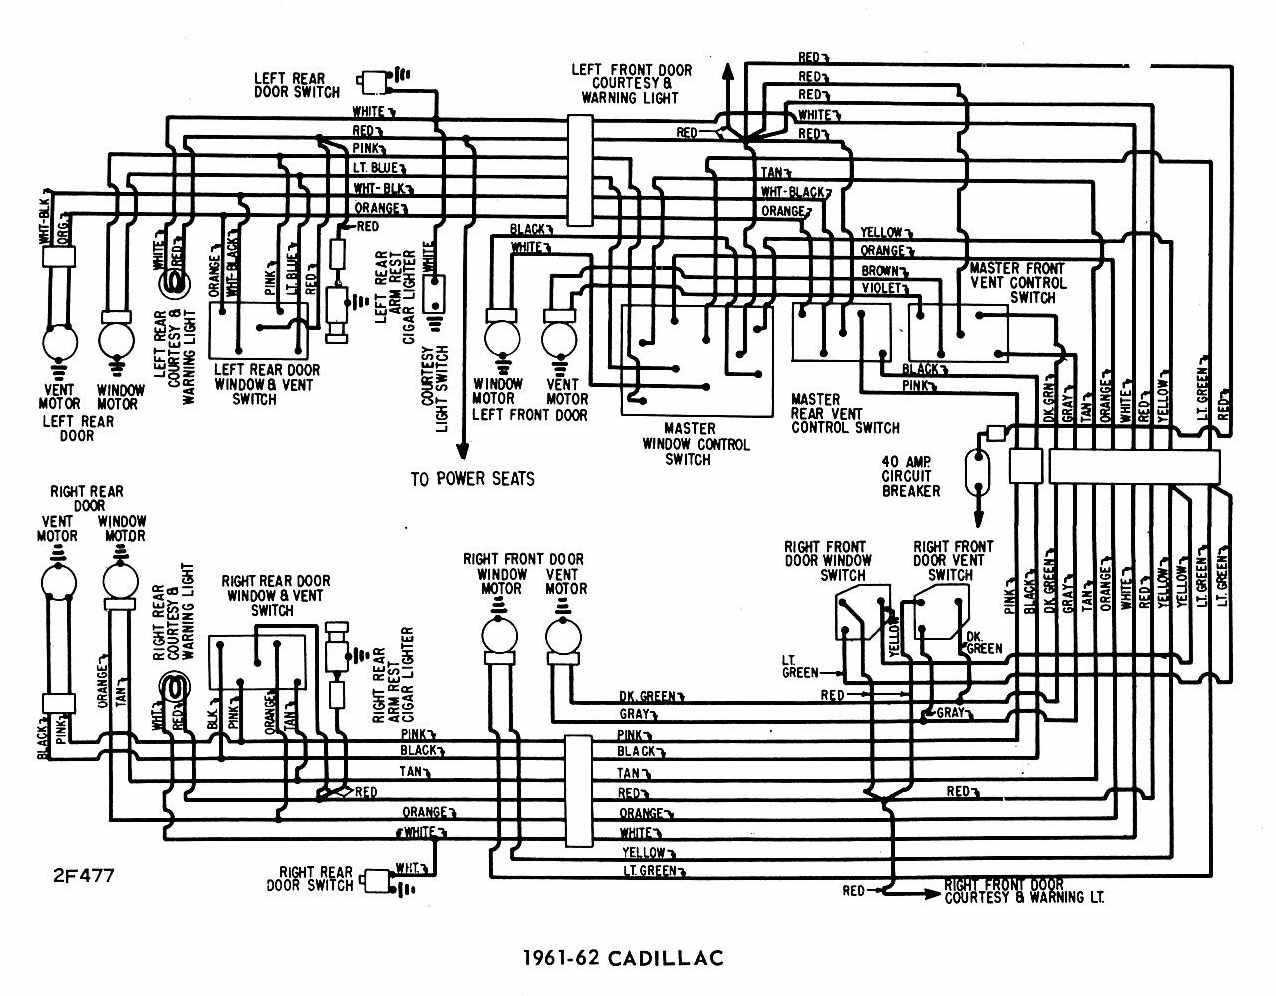 Cadillac 1961 1962 Windows Wiring on 2005 chevy impala stereo wiring diagram